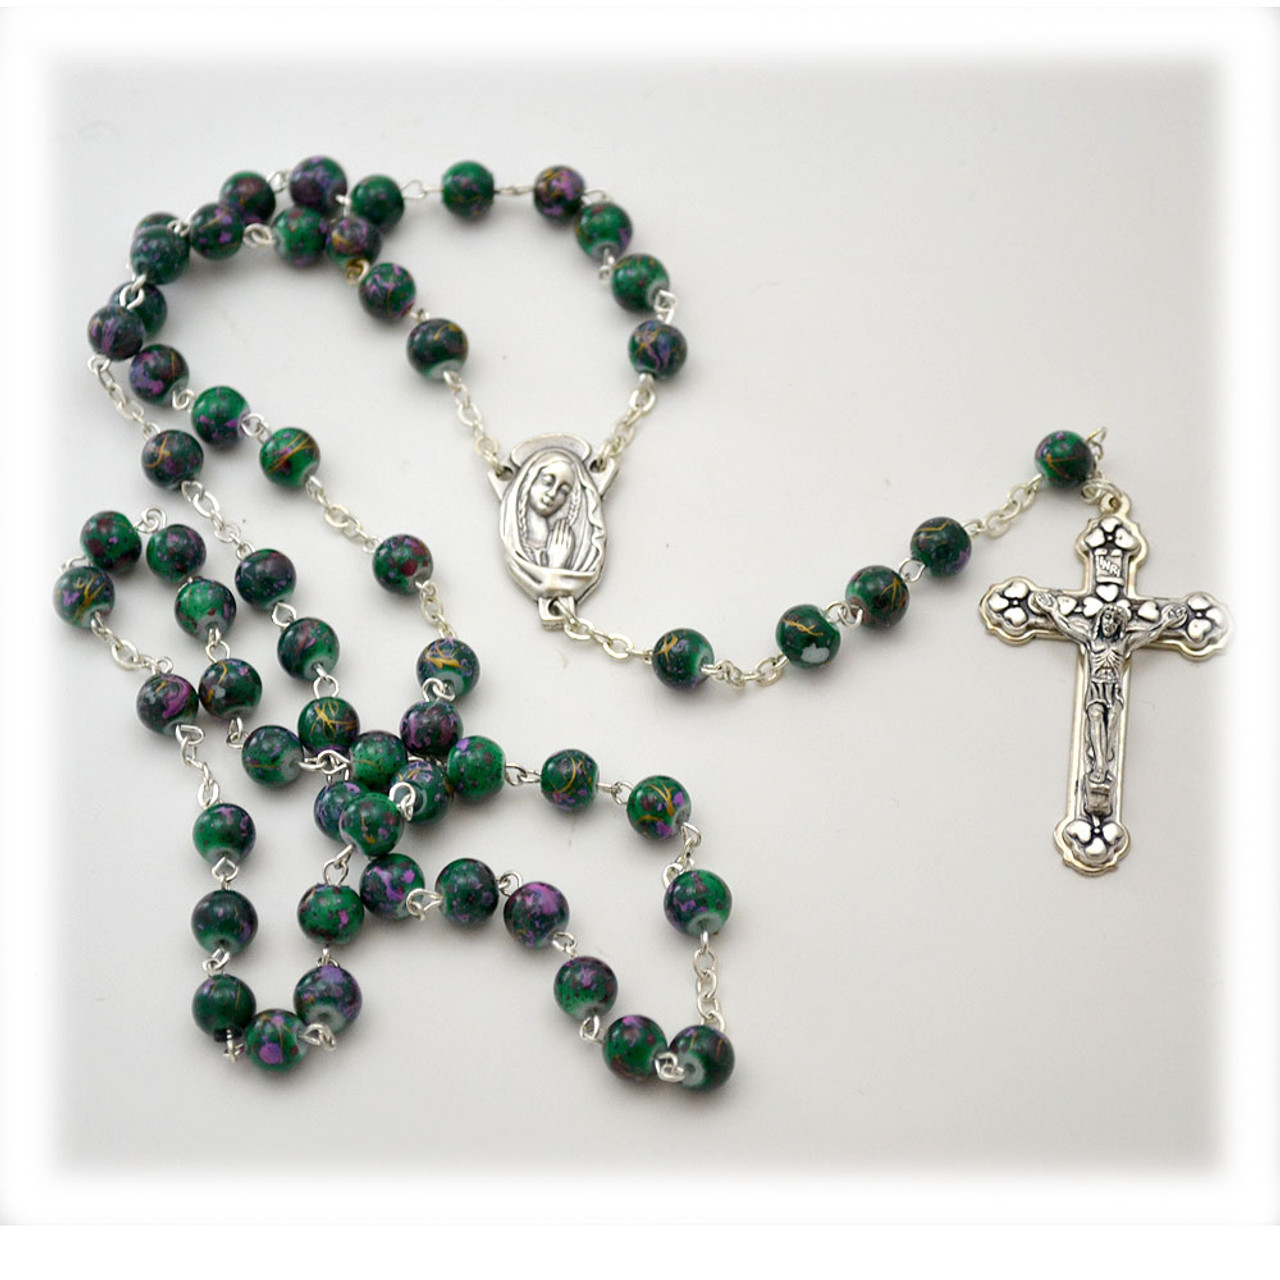 6mm Multi-Colored Mosaic Glass Bead Rosary